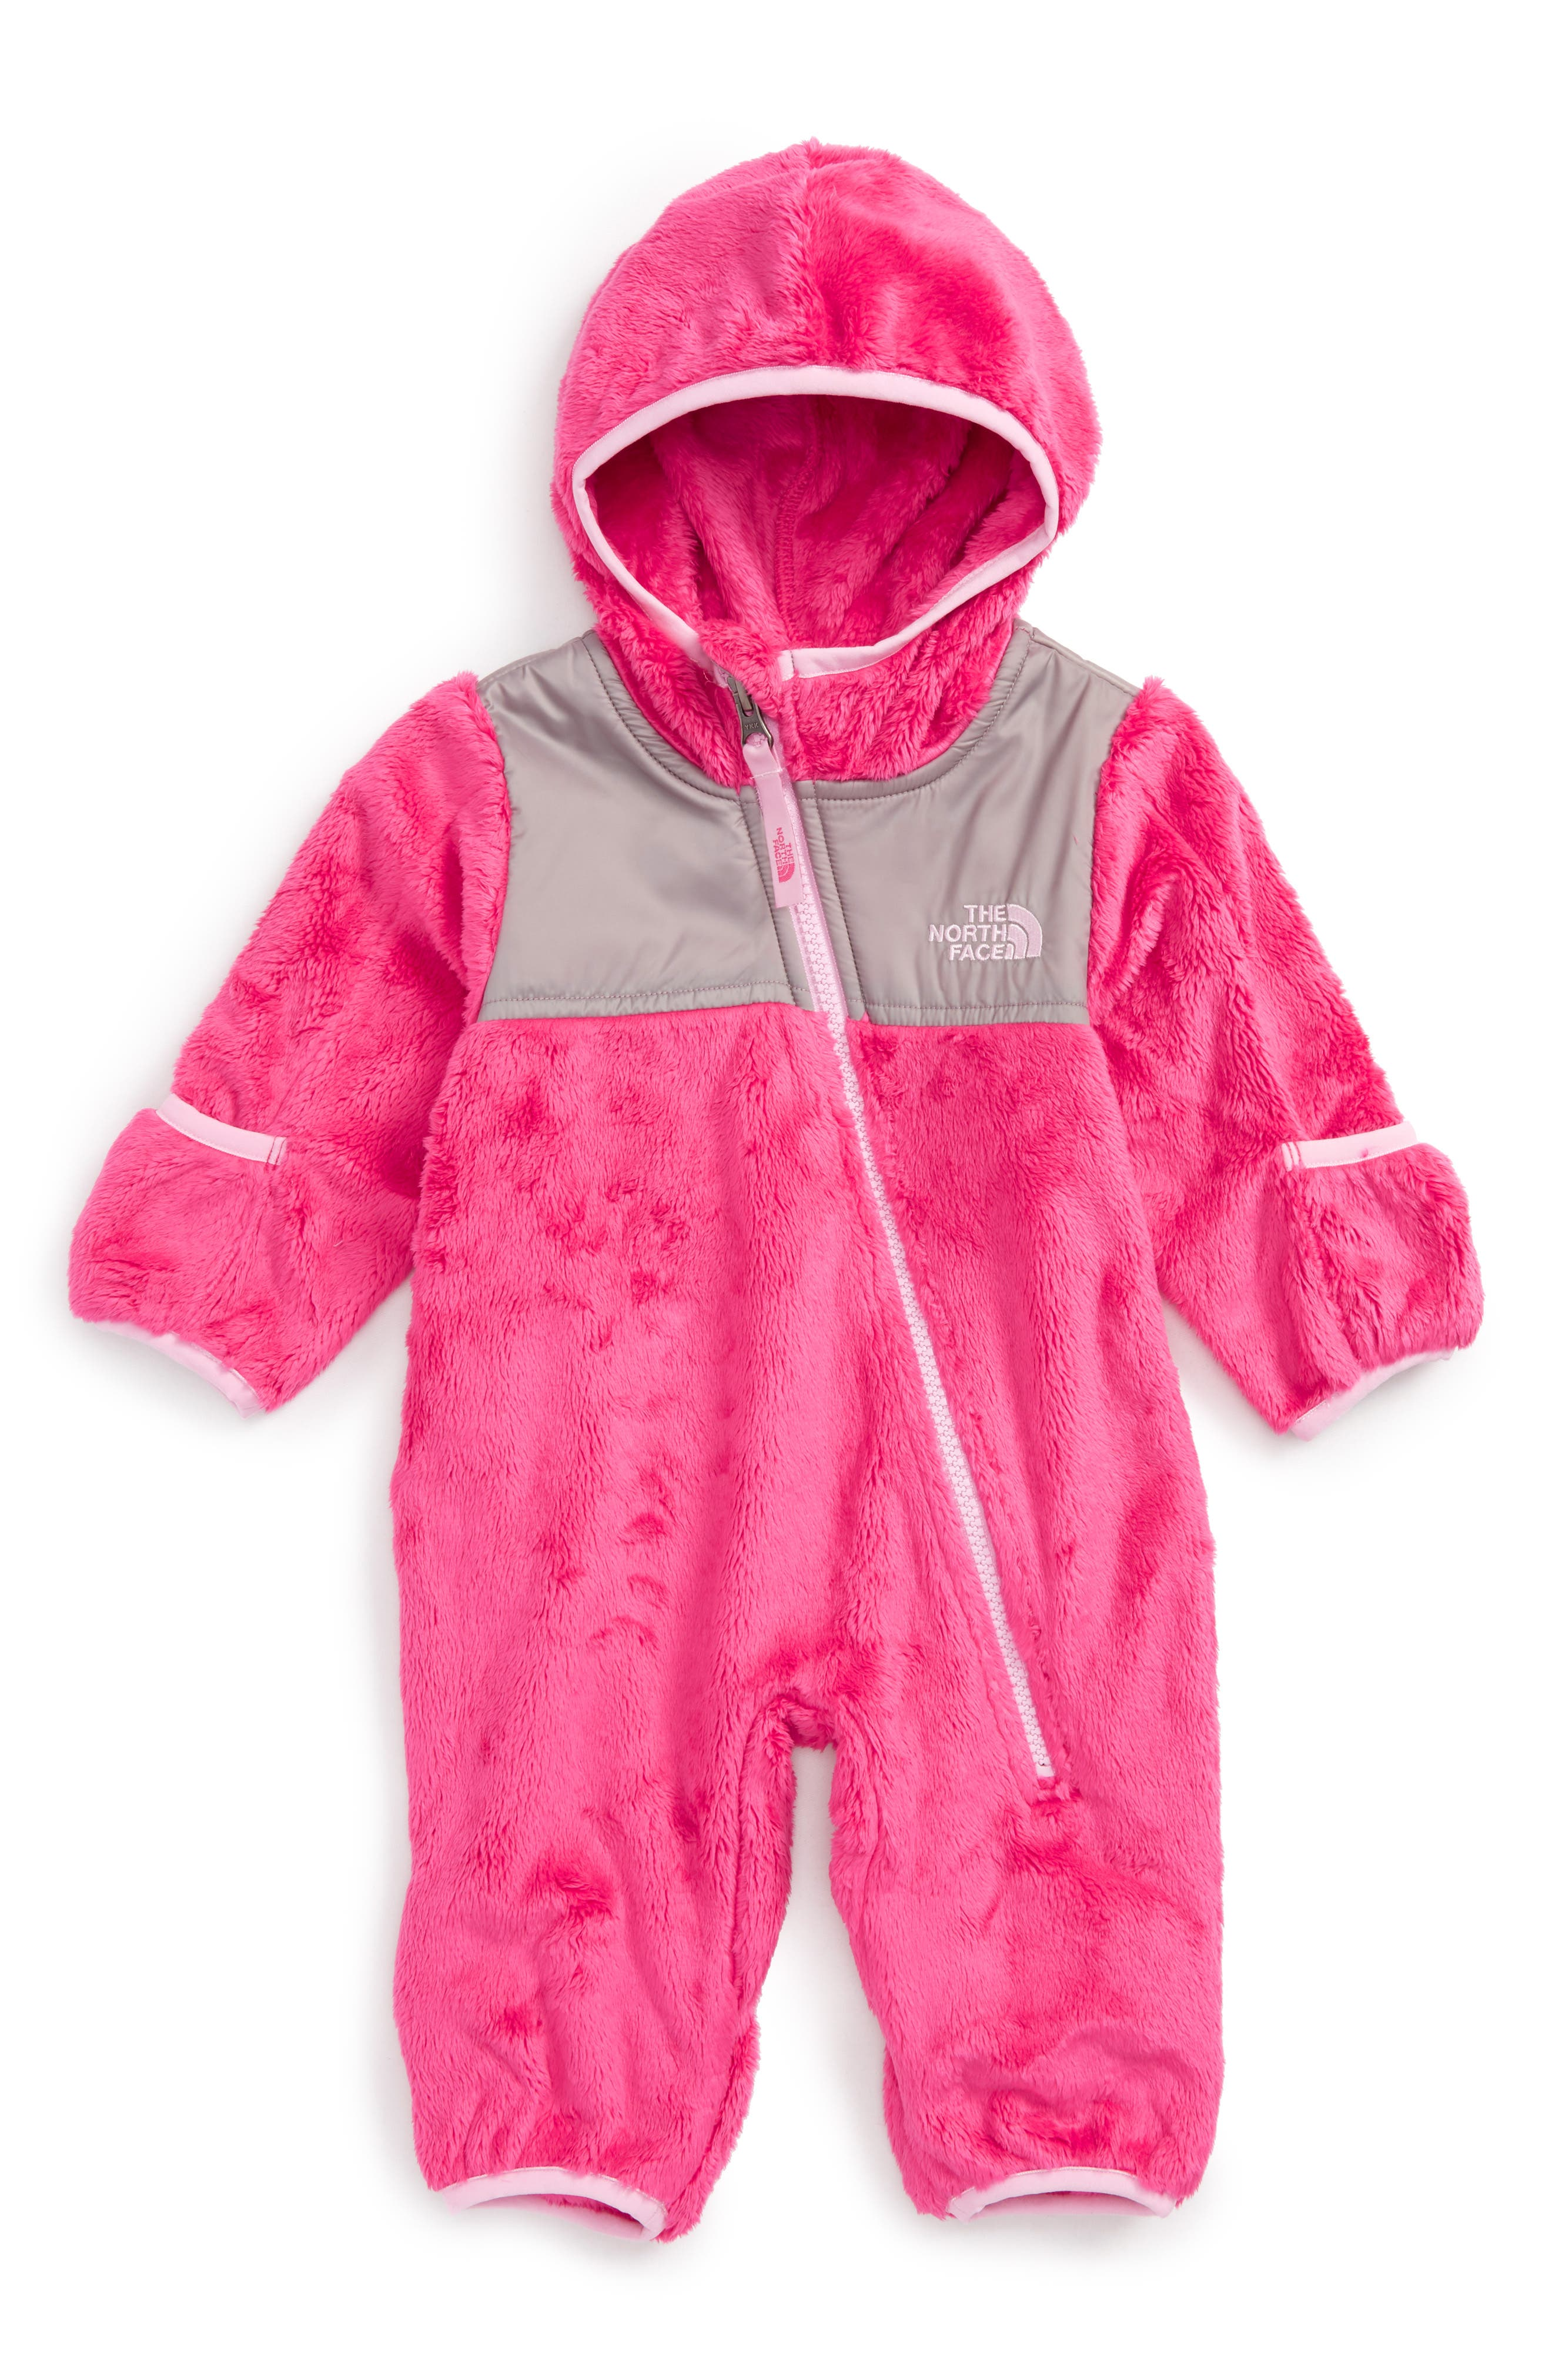 The North Face 'Oso' Hooded Fleece Romper (Baby Girls)